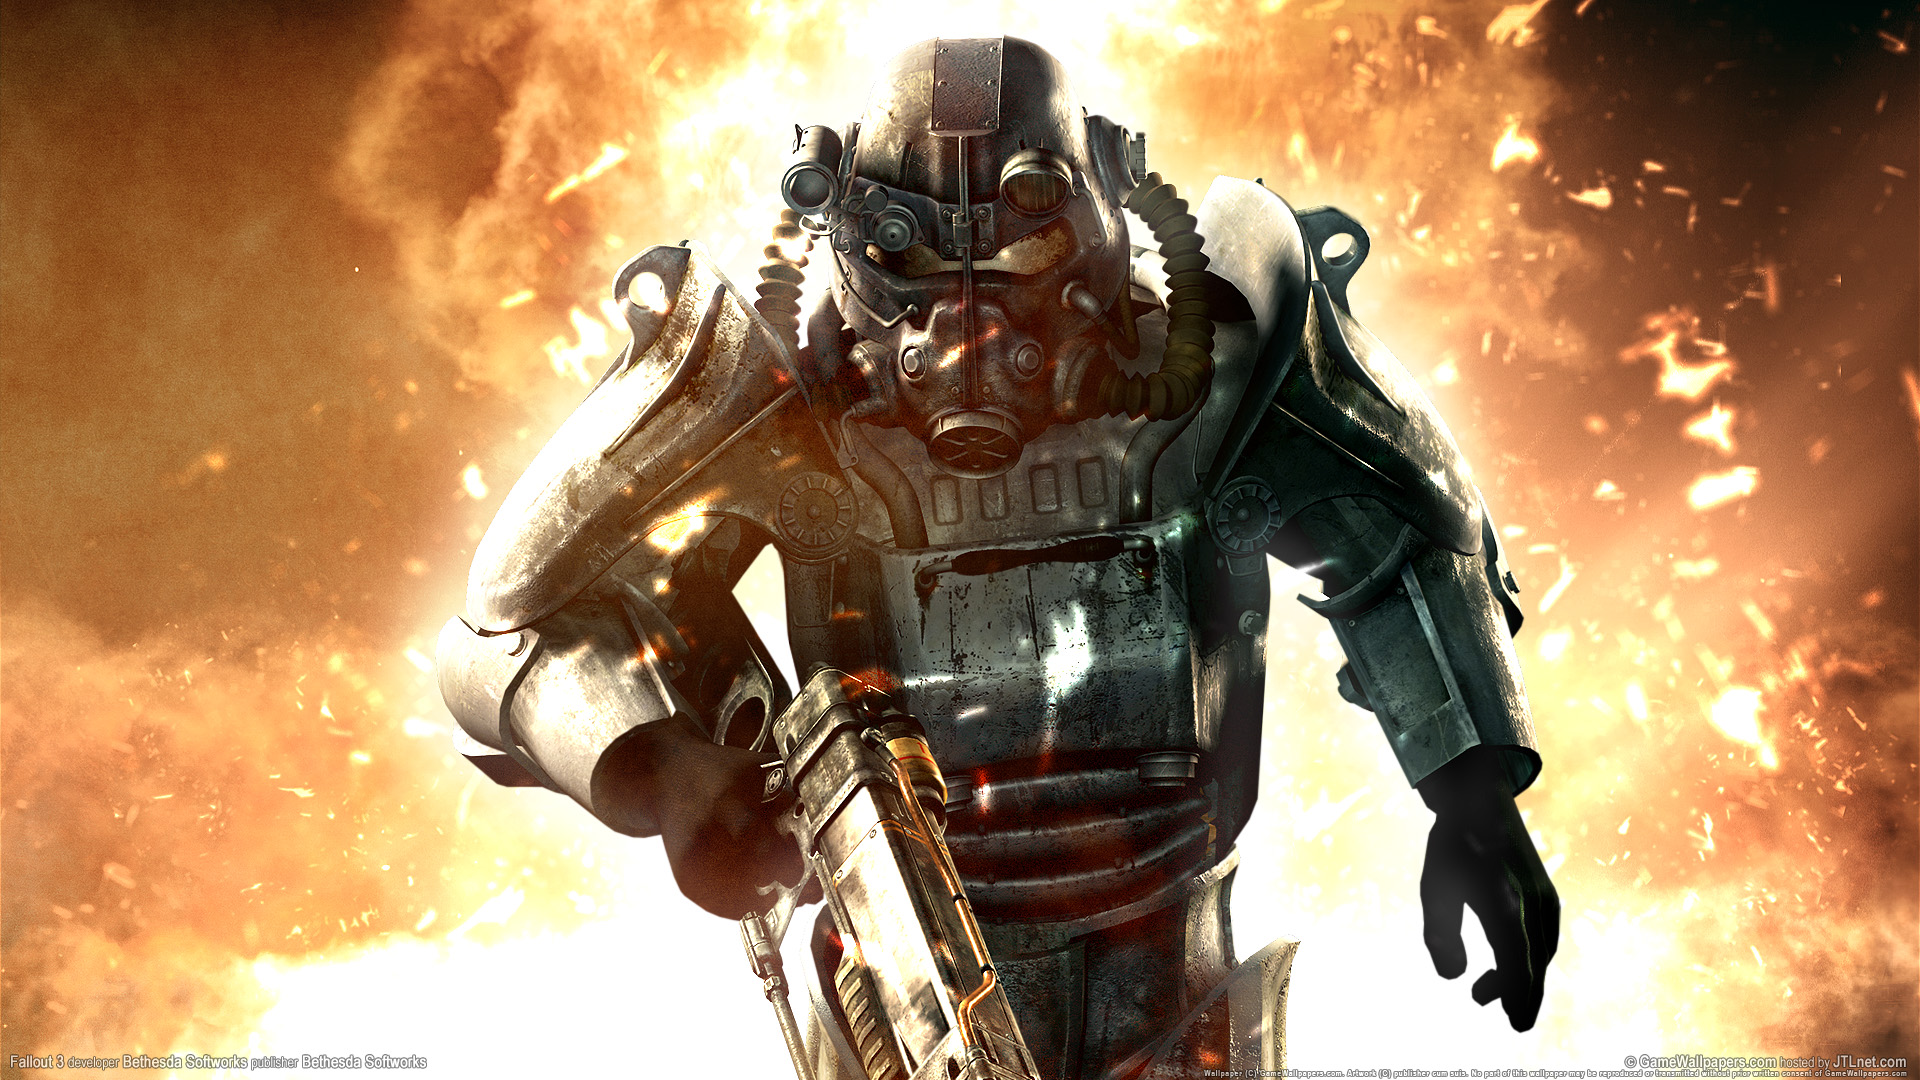 Fallout 3 Game Wallpapers HD Wallpapers 1920x1080